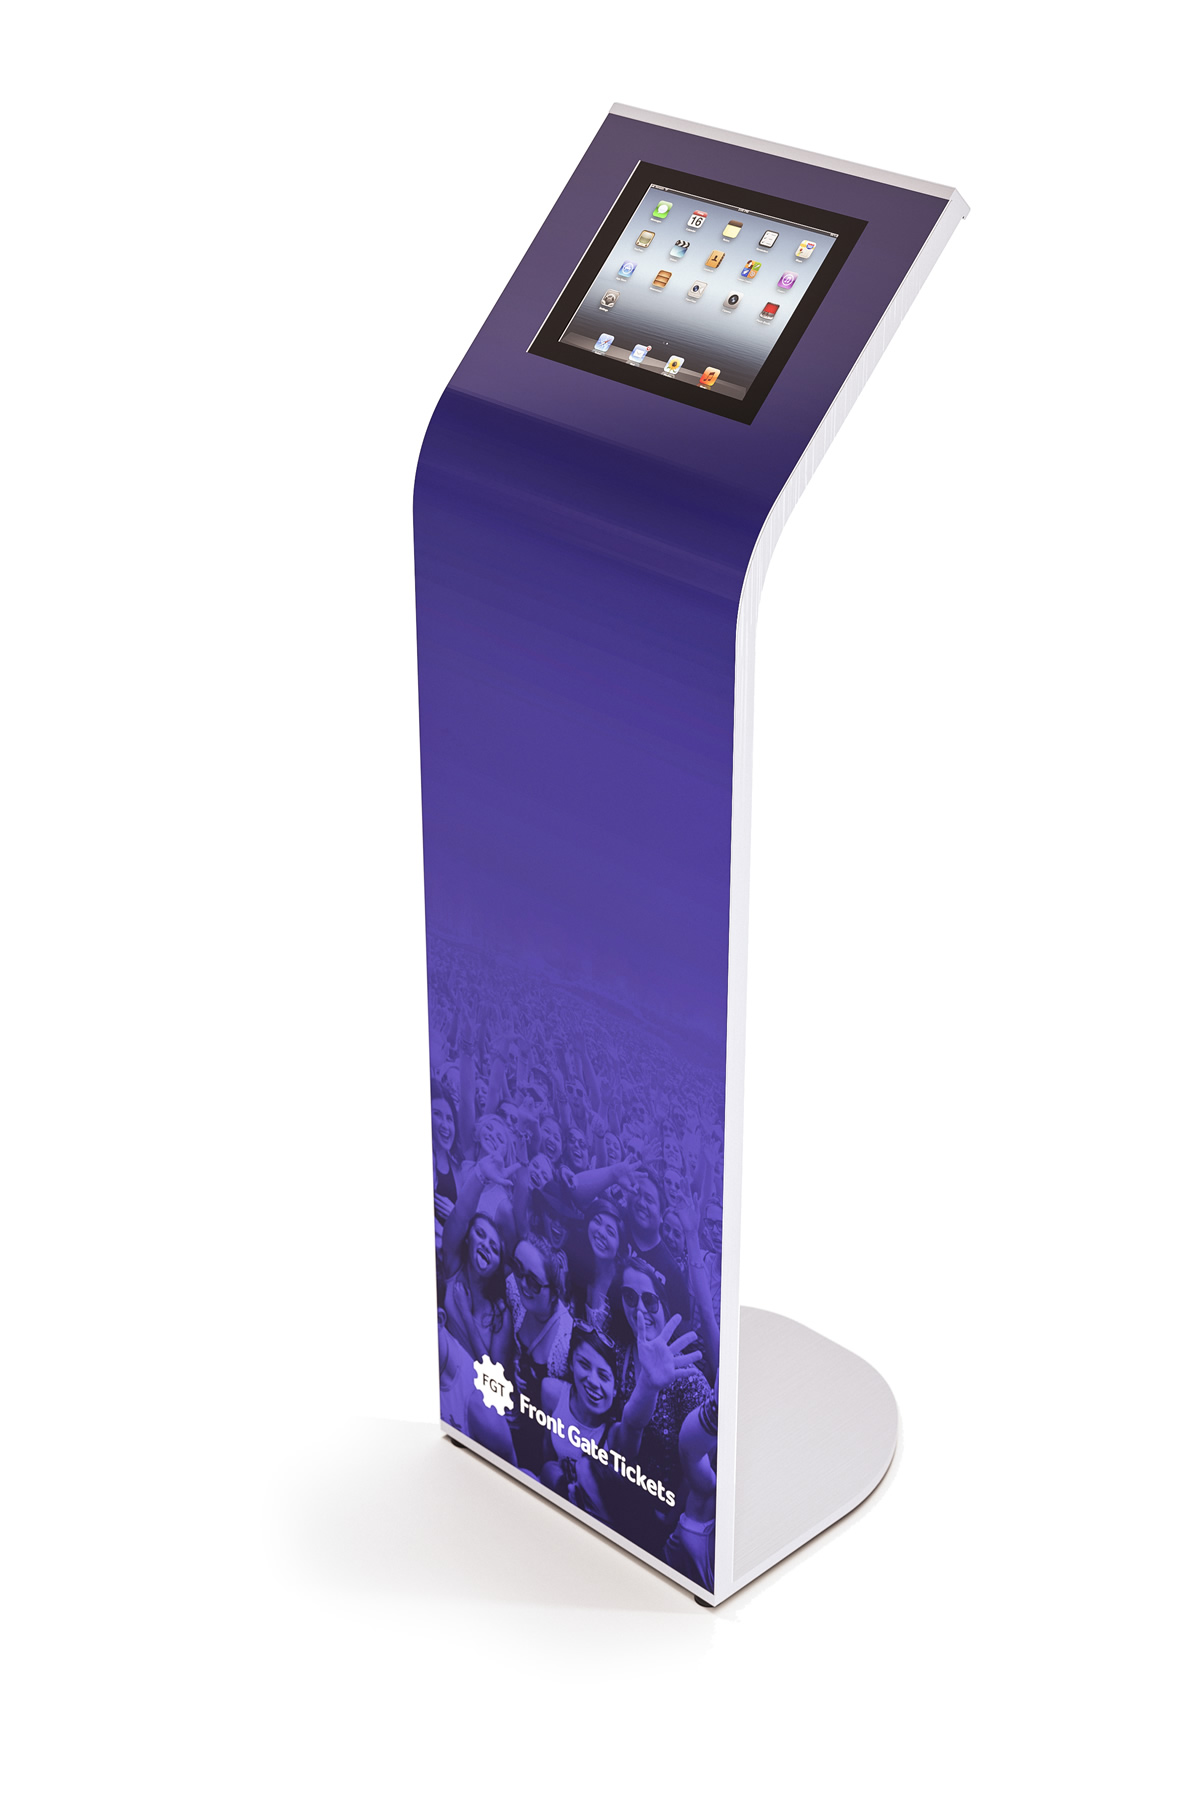 Kiosk, stand, Ipad stand, Kiosk stand, Visitor Management, IDreception, Visitor sign in